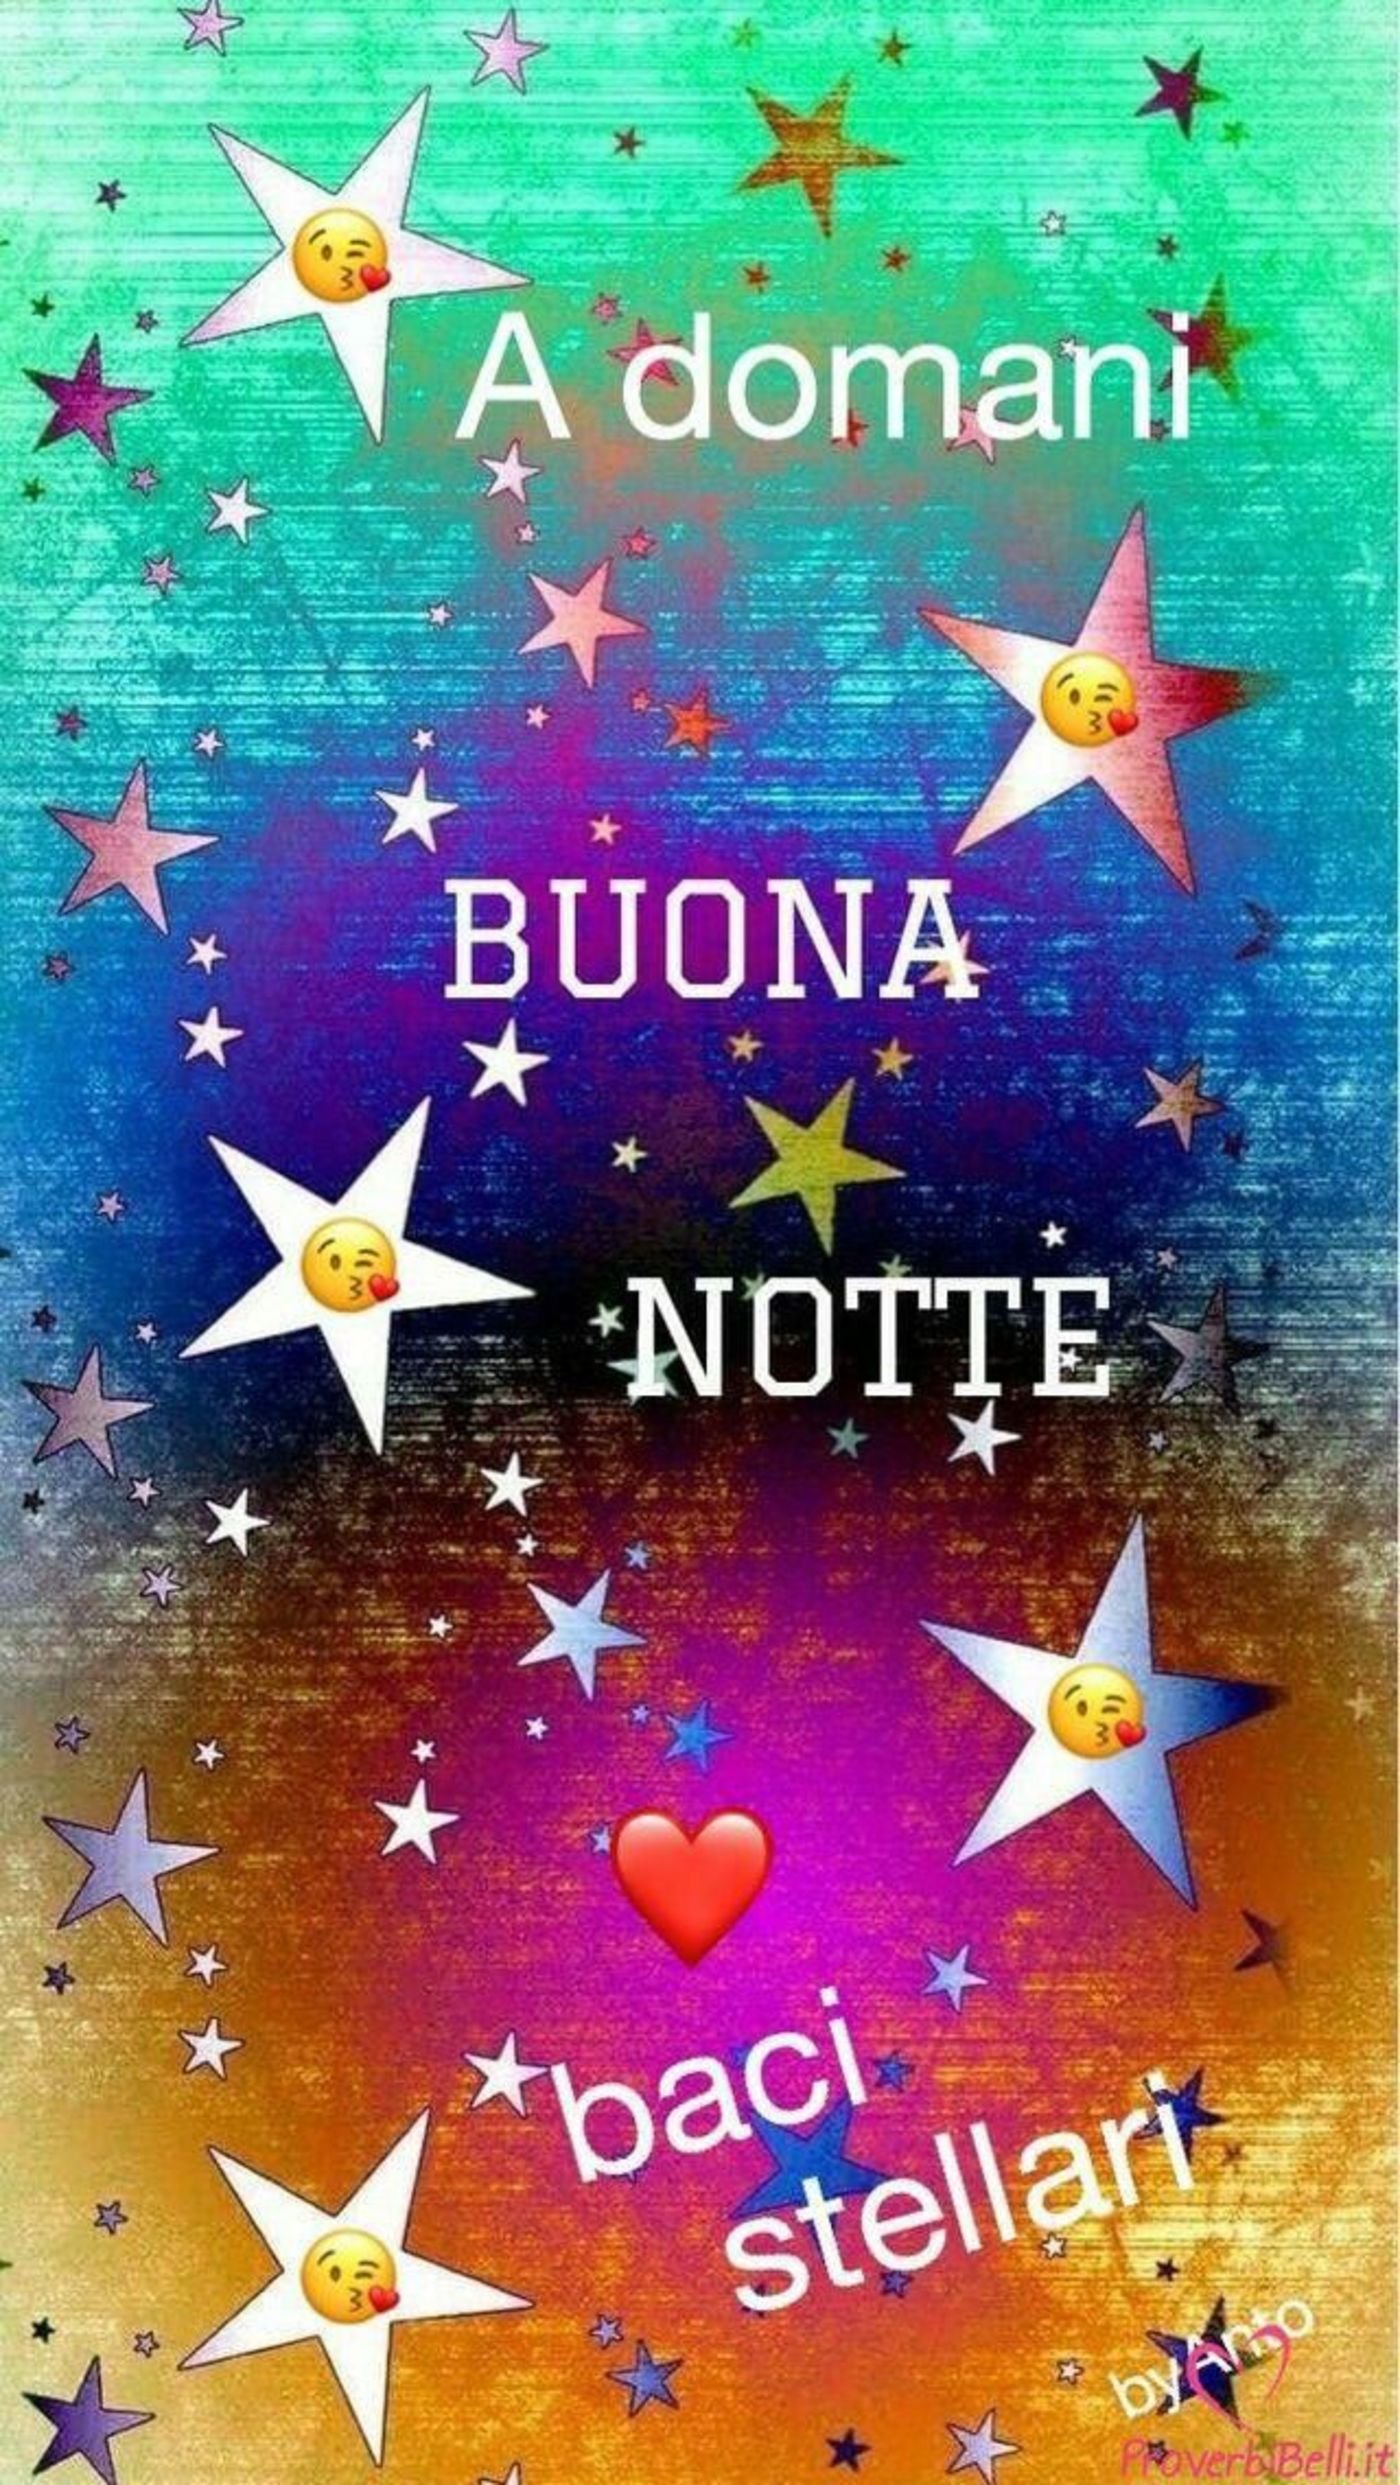 Dolce Notte 3132 Buongiornissimocaffe It